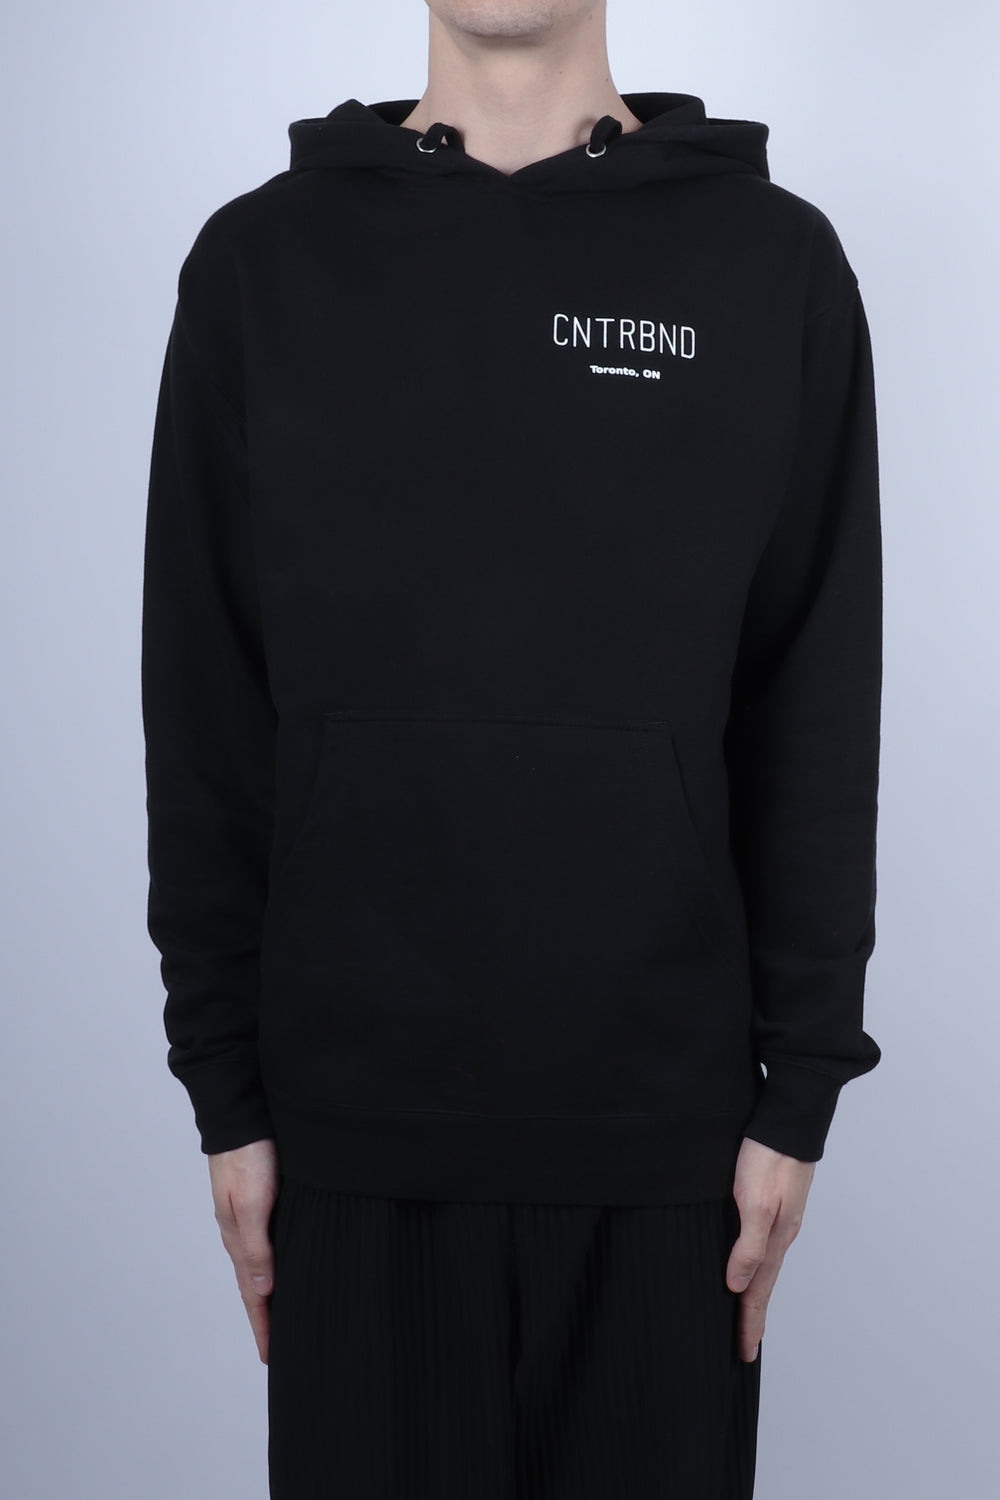 CNTRBND TORONTO City Hoodie In Black